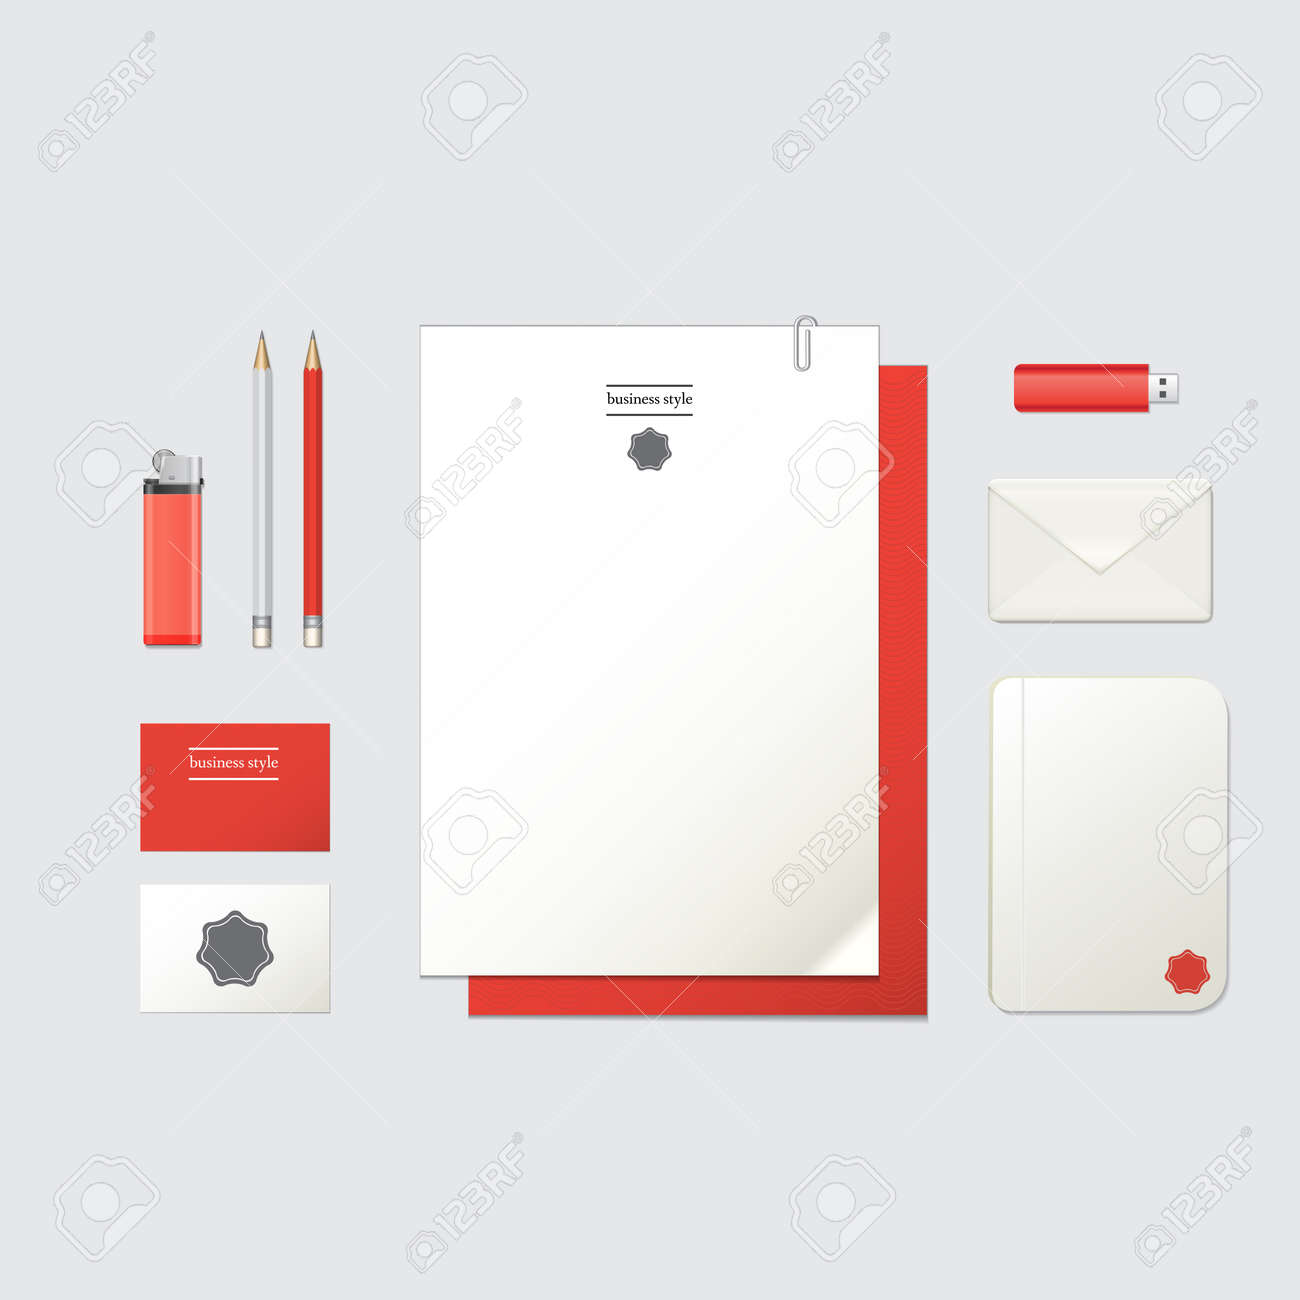 Corporate identity template blank business cards envelope blank business cards envelope pencils flash drive lighter notepad with corporate sign isolated with soft shadows red and white colors reheart Gallery